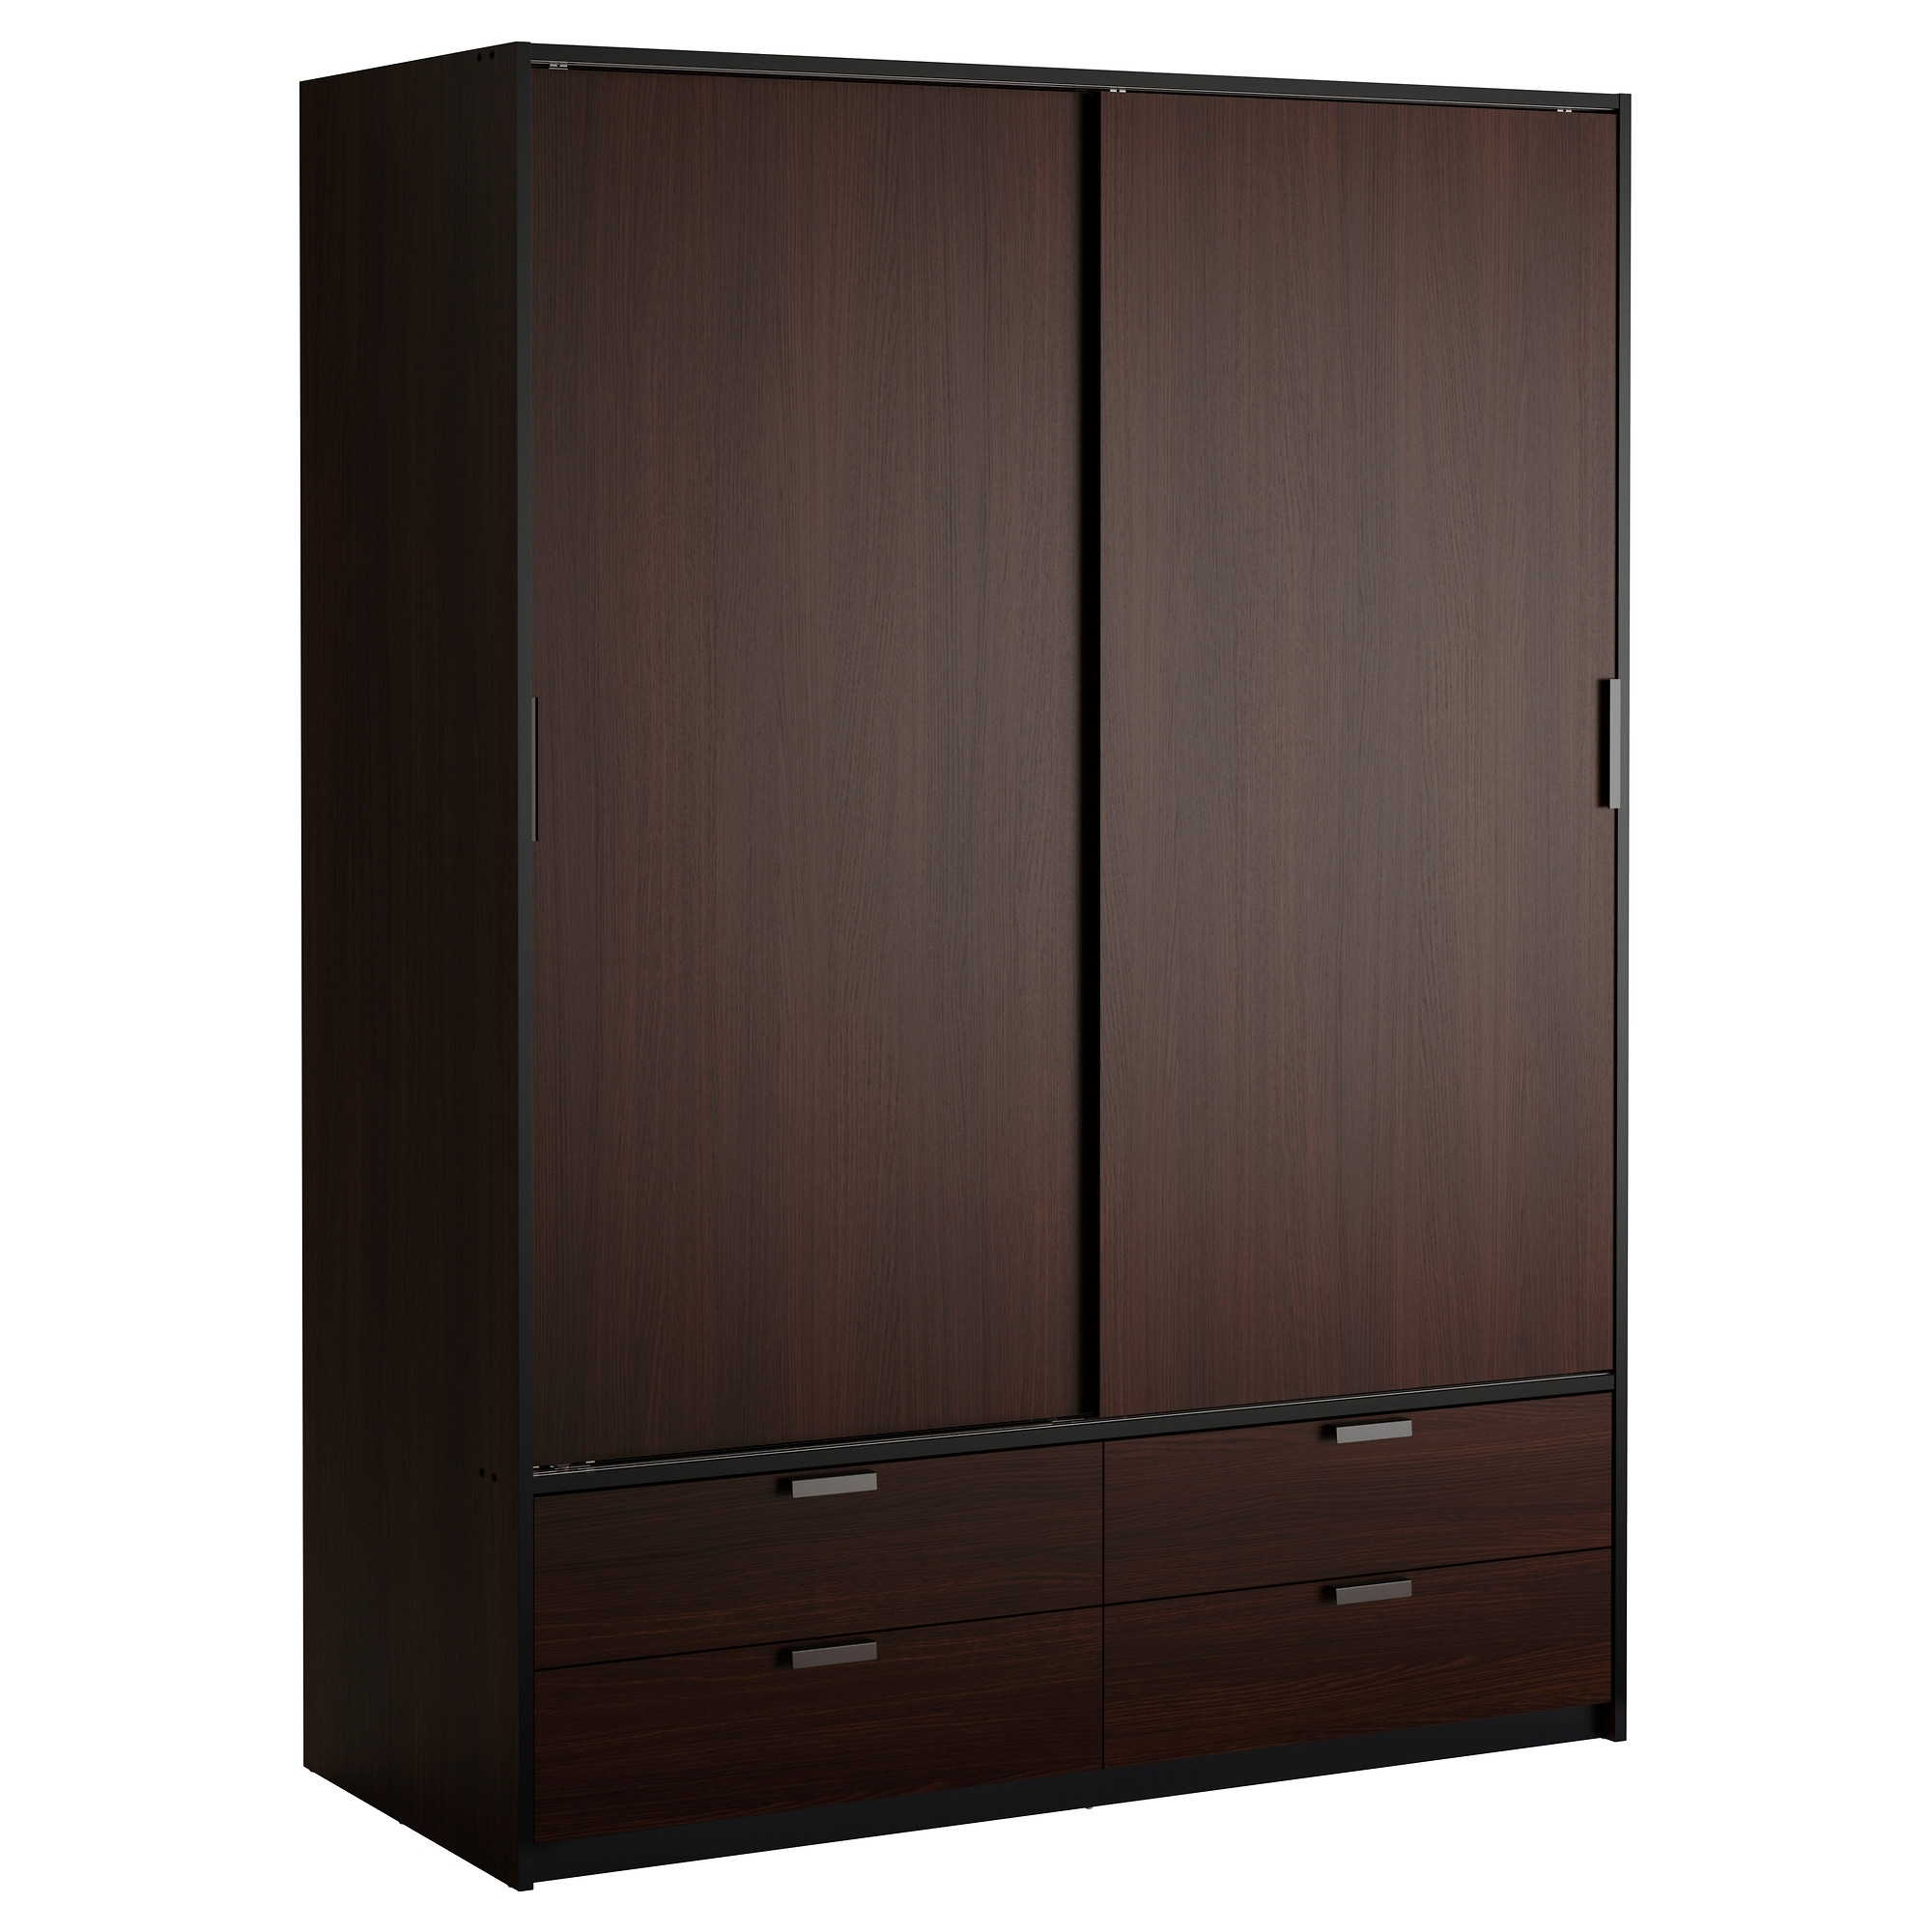 Dark Wood Wardrobes With Drawers Pertaining To Preferred Possible Wardrobe Solution – Trysil Wardrobe W Sliding Doors/ (View 6 of 15)